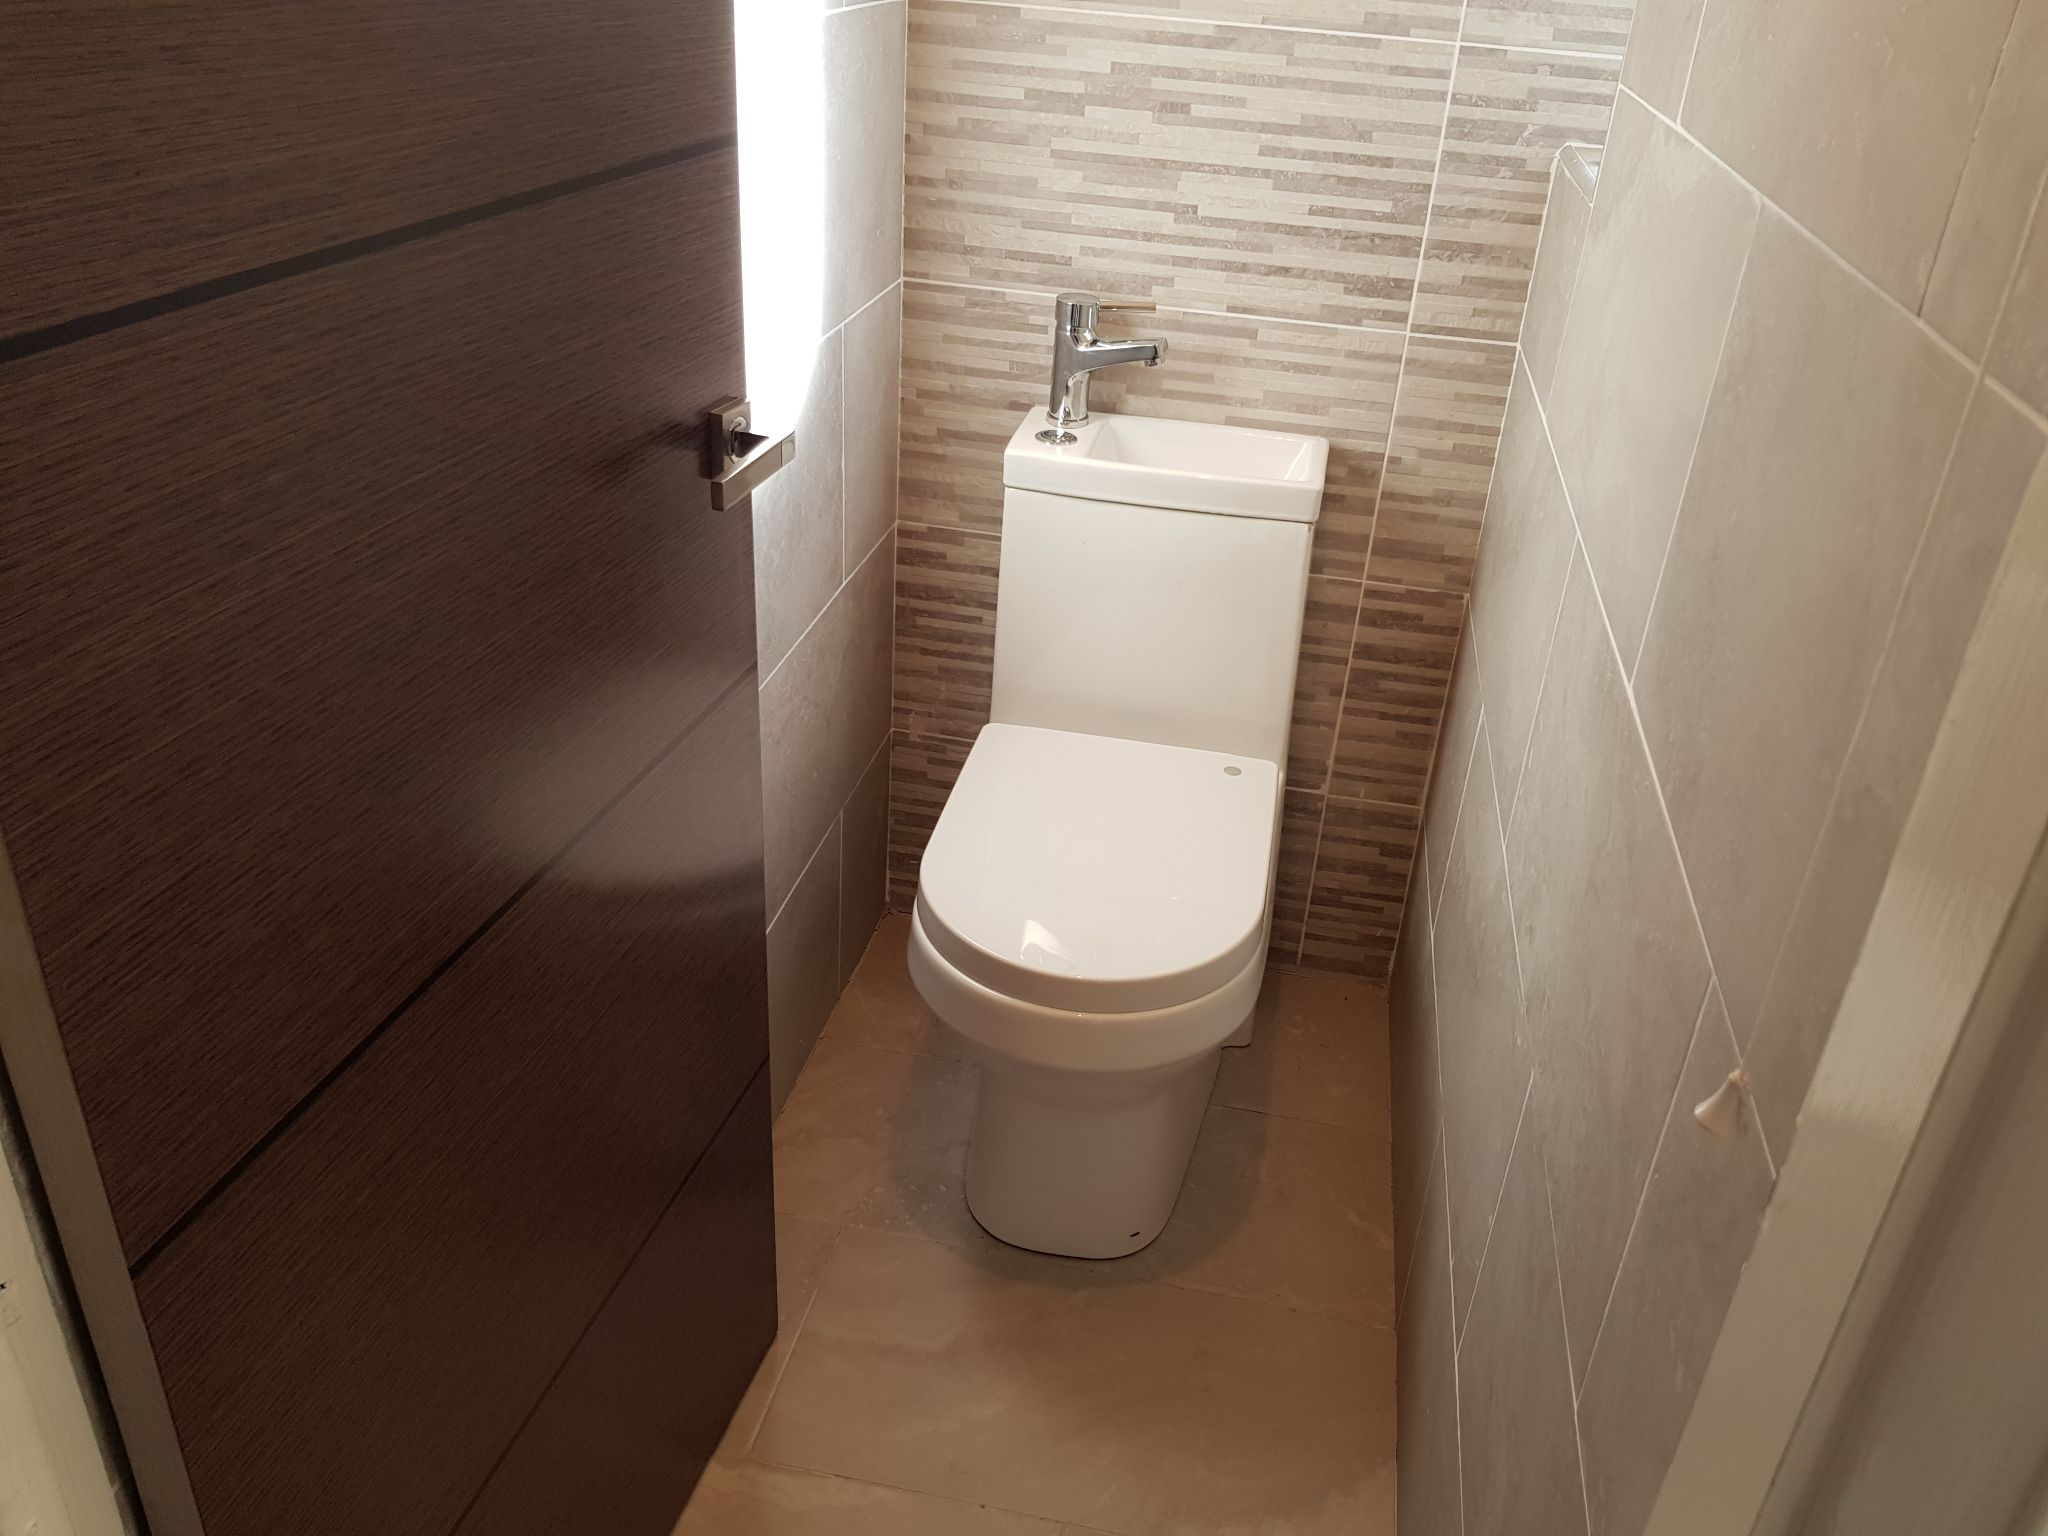 3 Bedroom Semi-detached House For Sale - Separate WC